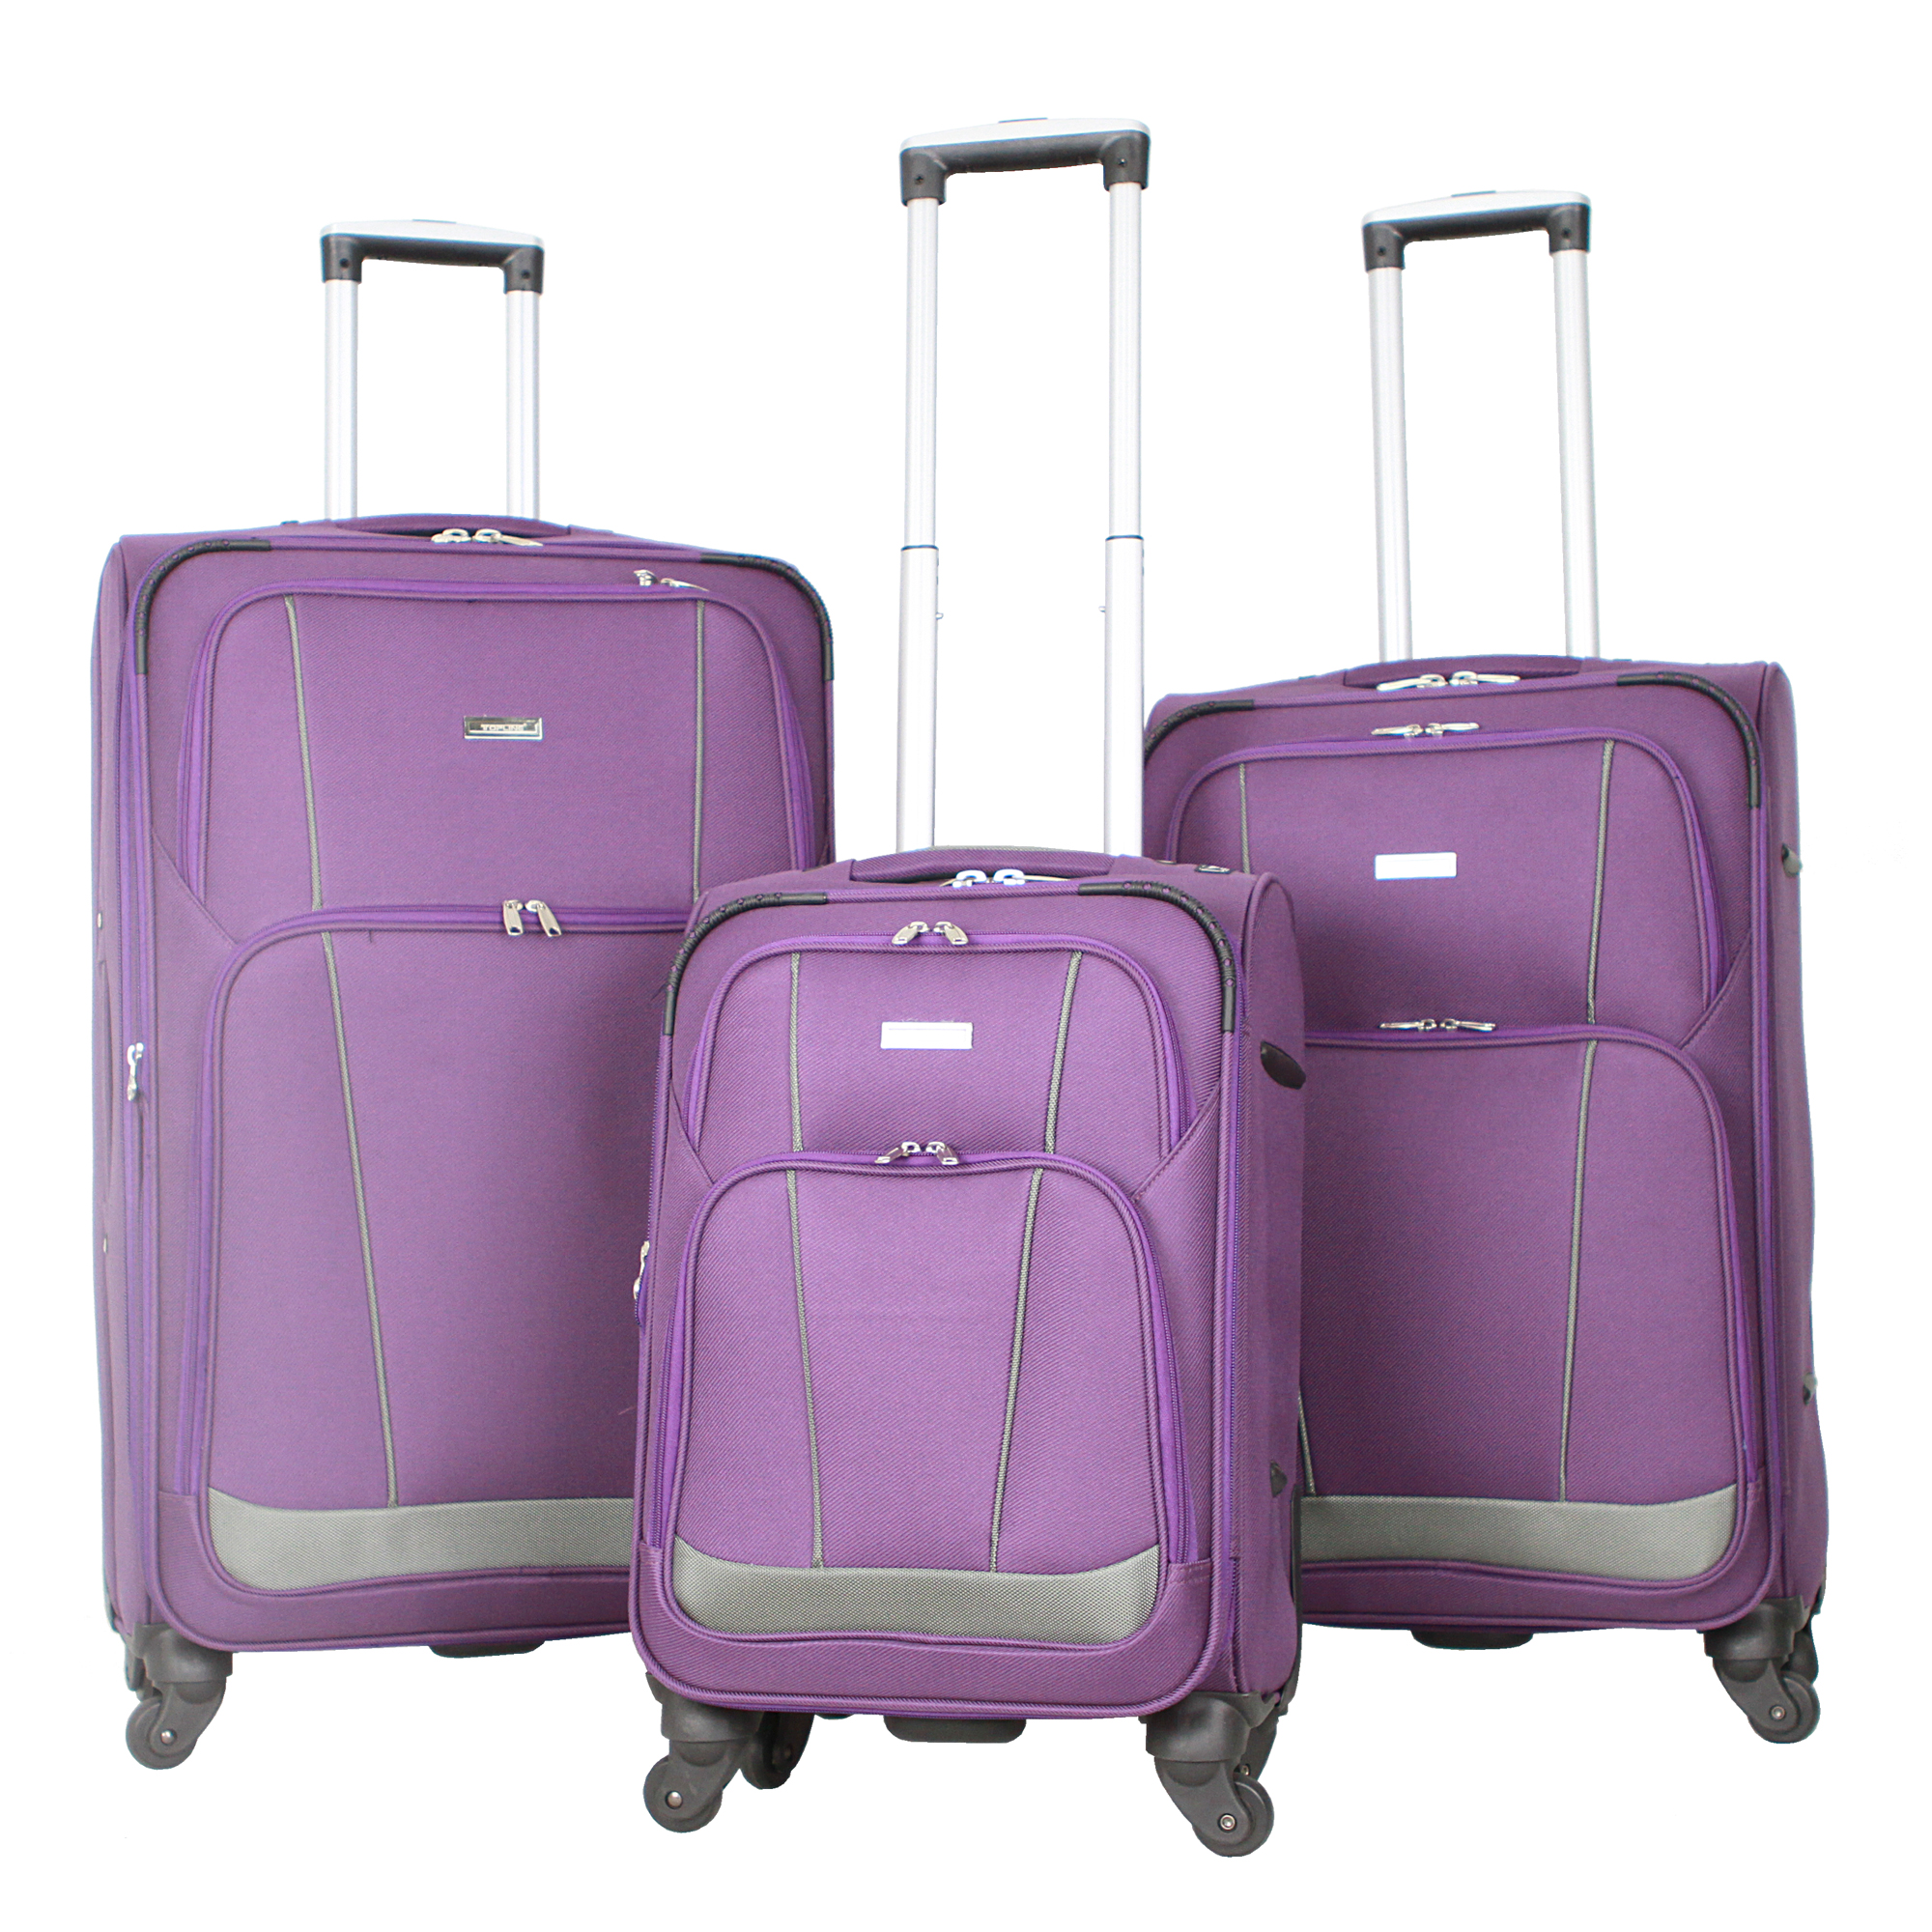 39640ea88 Products – CY Luggage